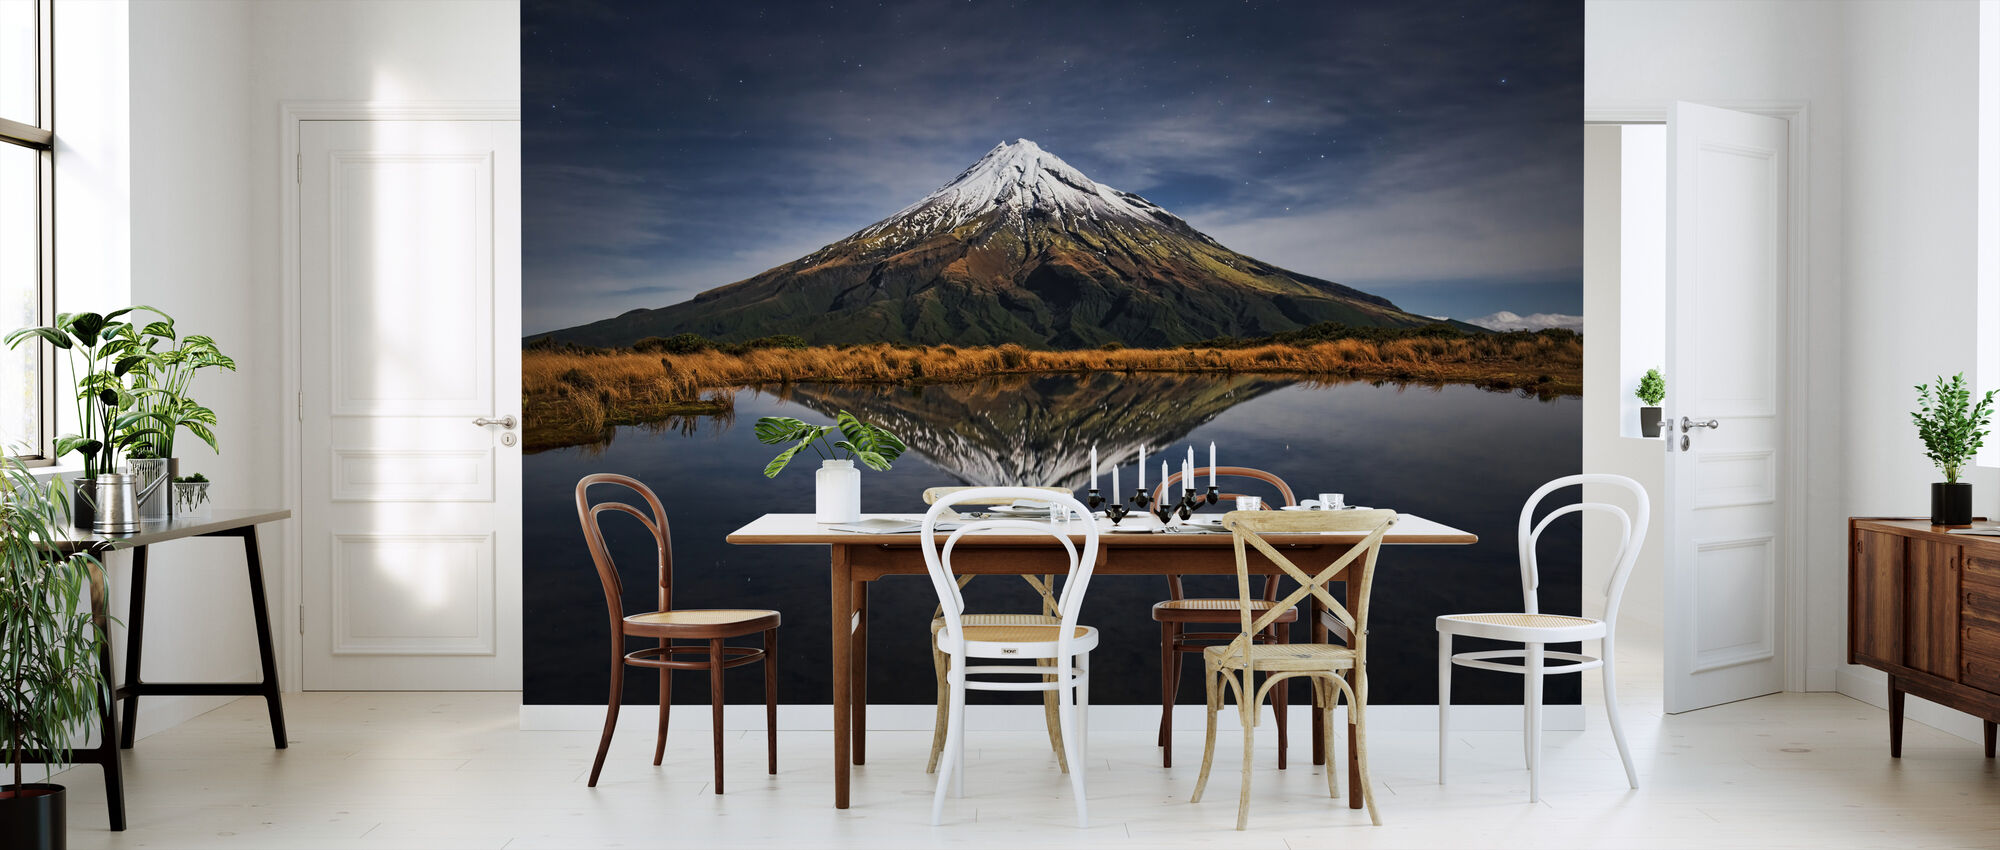 Mount Taranaki een sterrennacht - Behang - Keuken